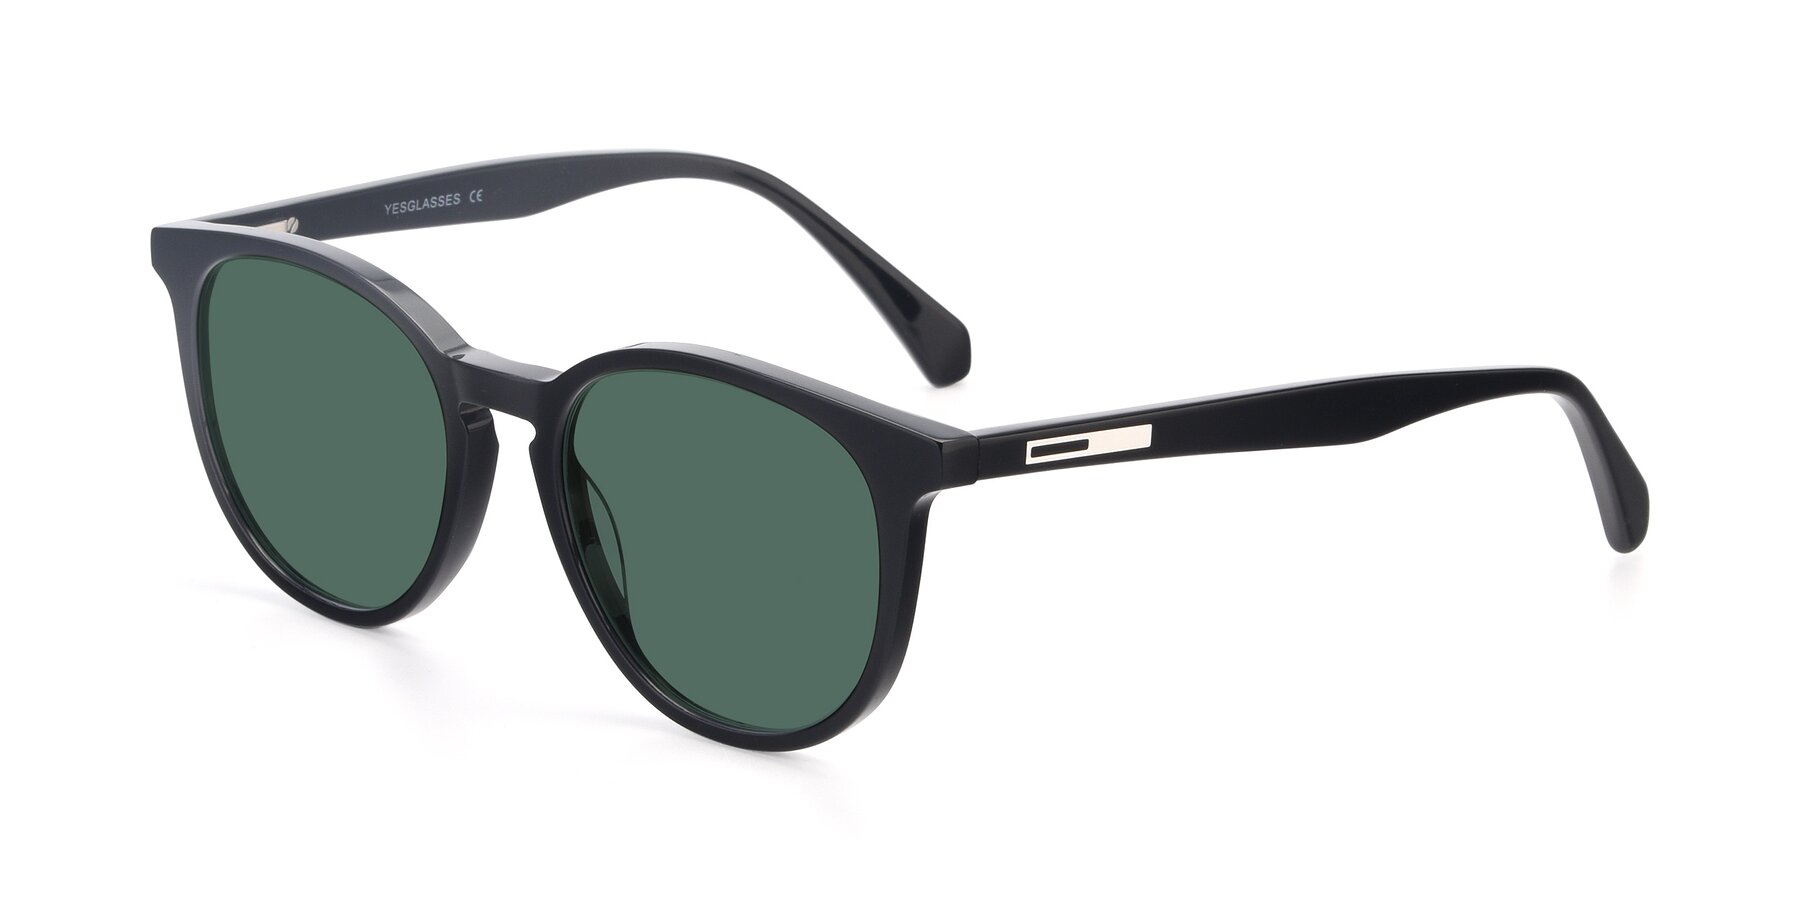 Angle of 17721 in Black with Green Polarized Lenses